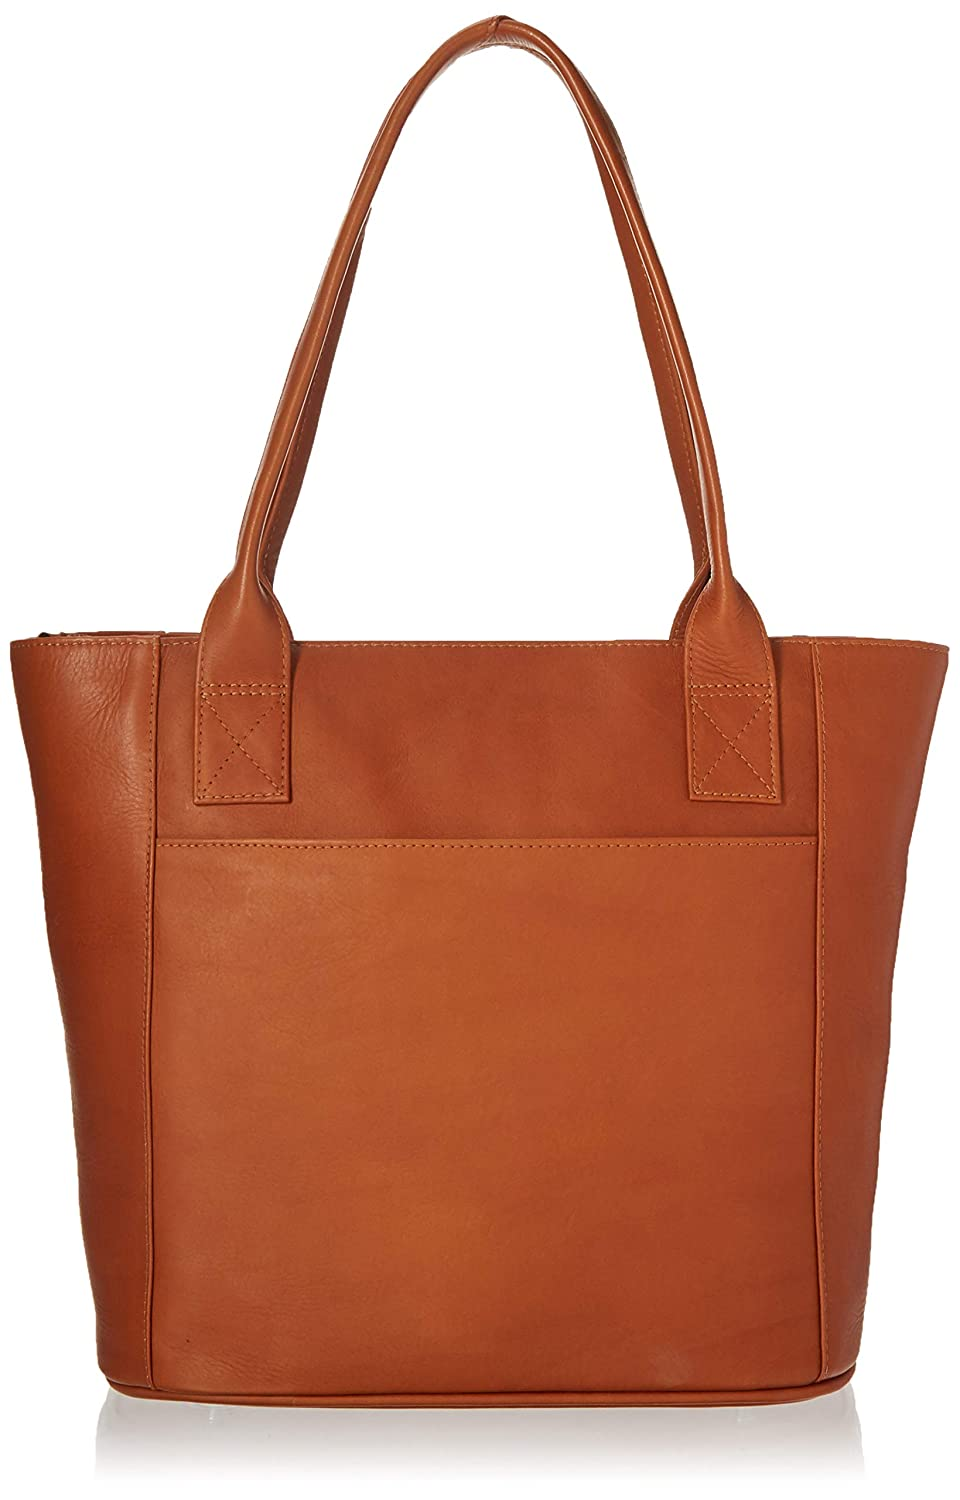 Piel Leather Small Tote Bag, Saddle